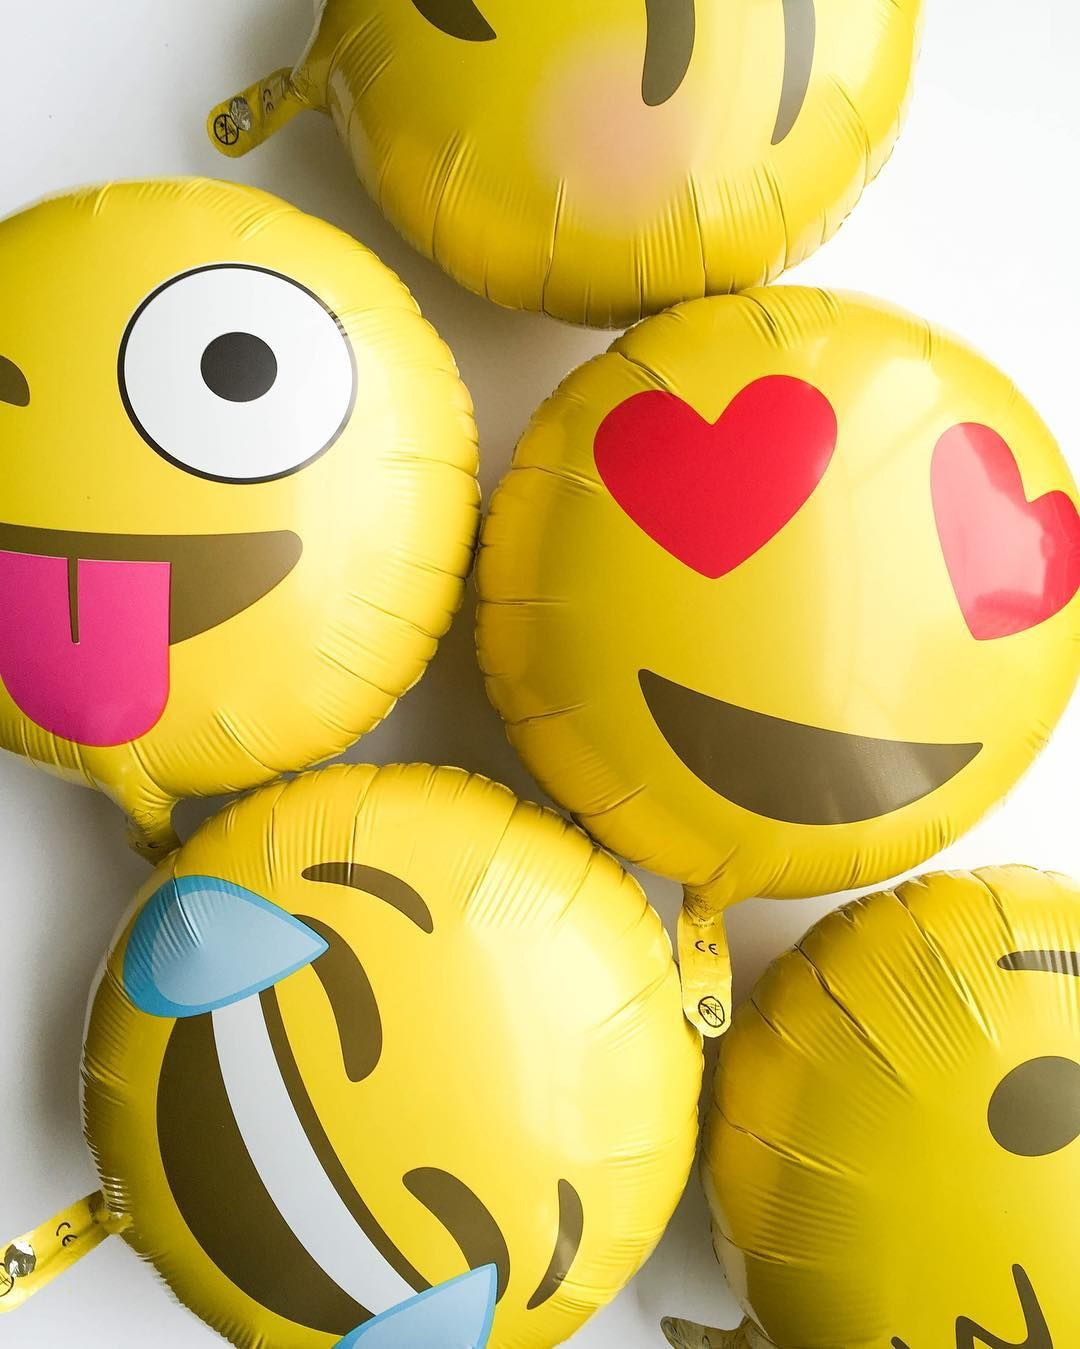 emoji balloons oh happy day party shop emoji fun balloons emoji foil balloons. Black Bedroom Furniture Sets. Home Design Ideas